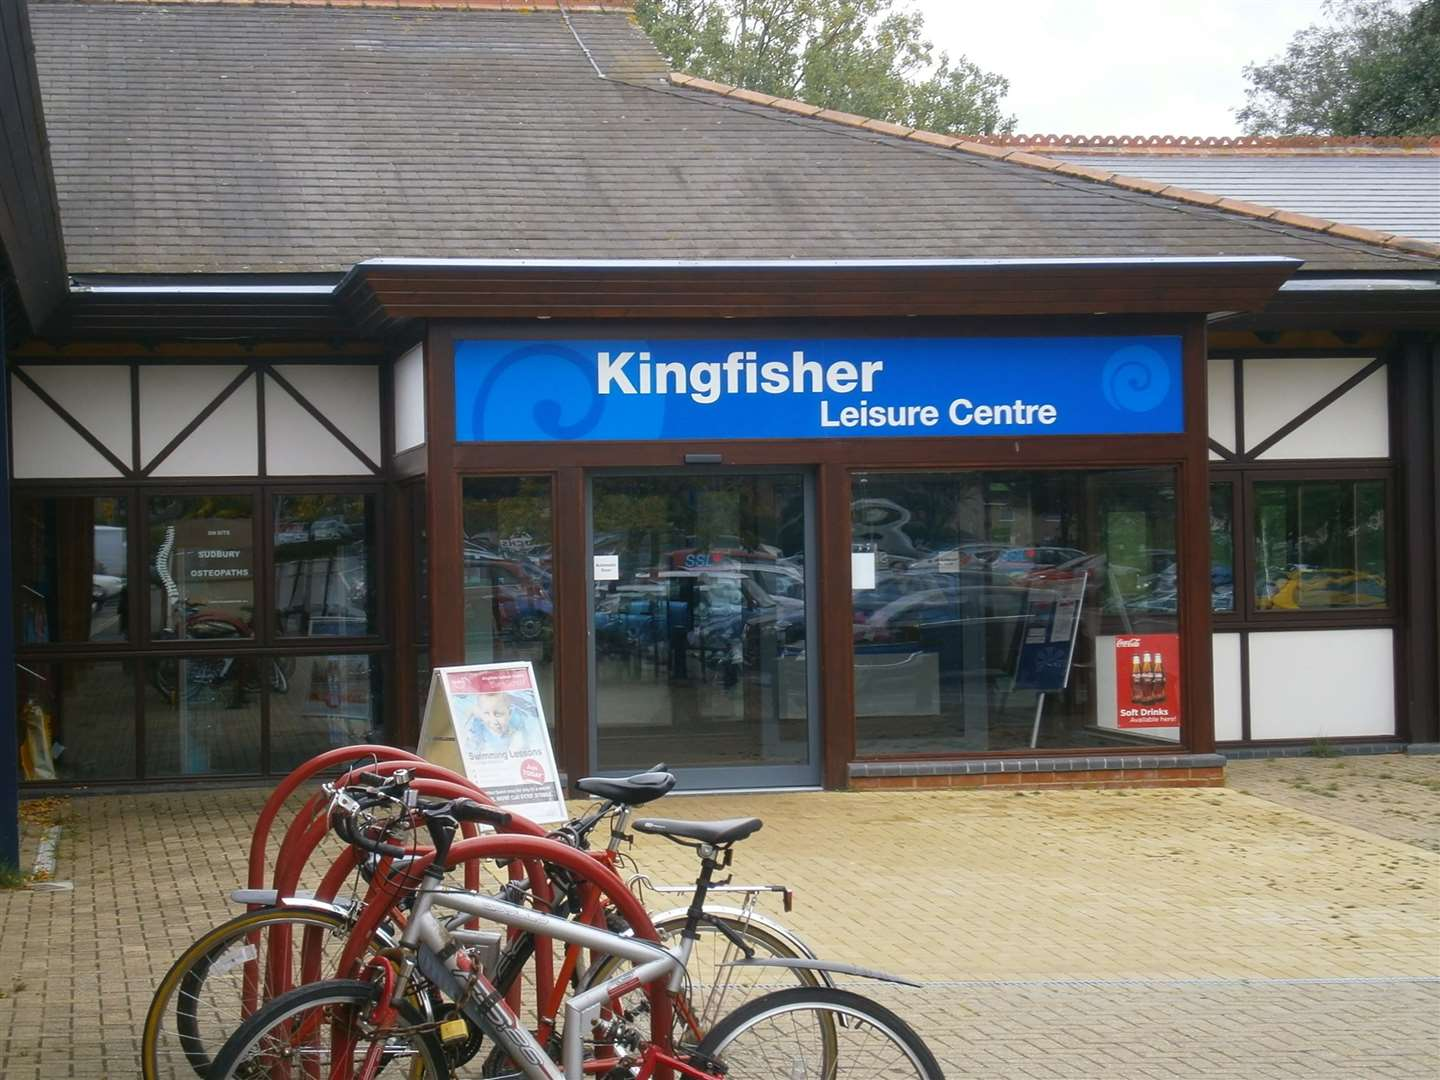 Kingfisher Leisure Centre, Sudbury. (27440532)